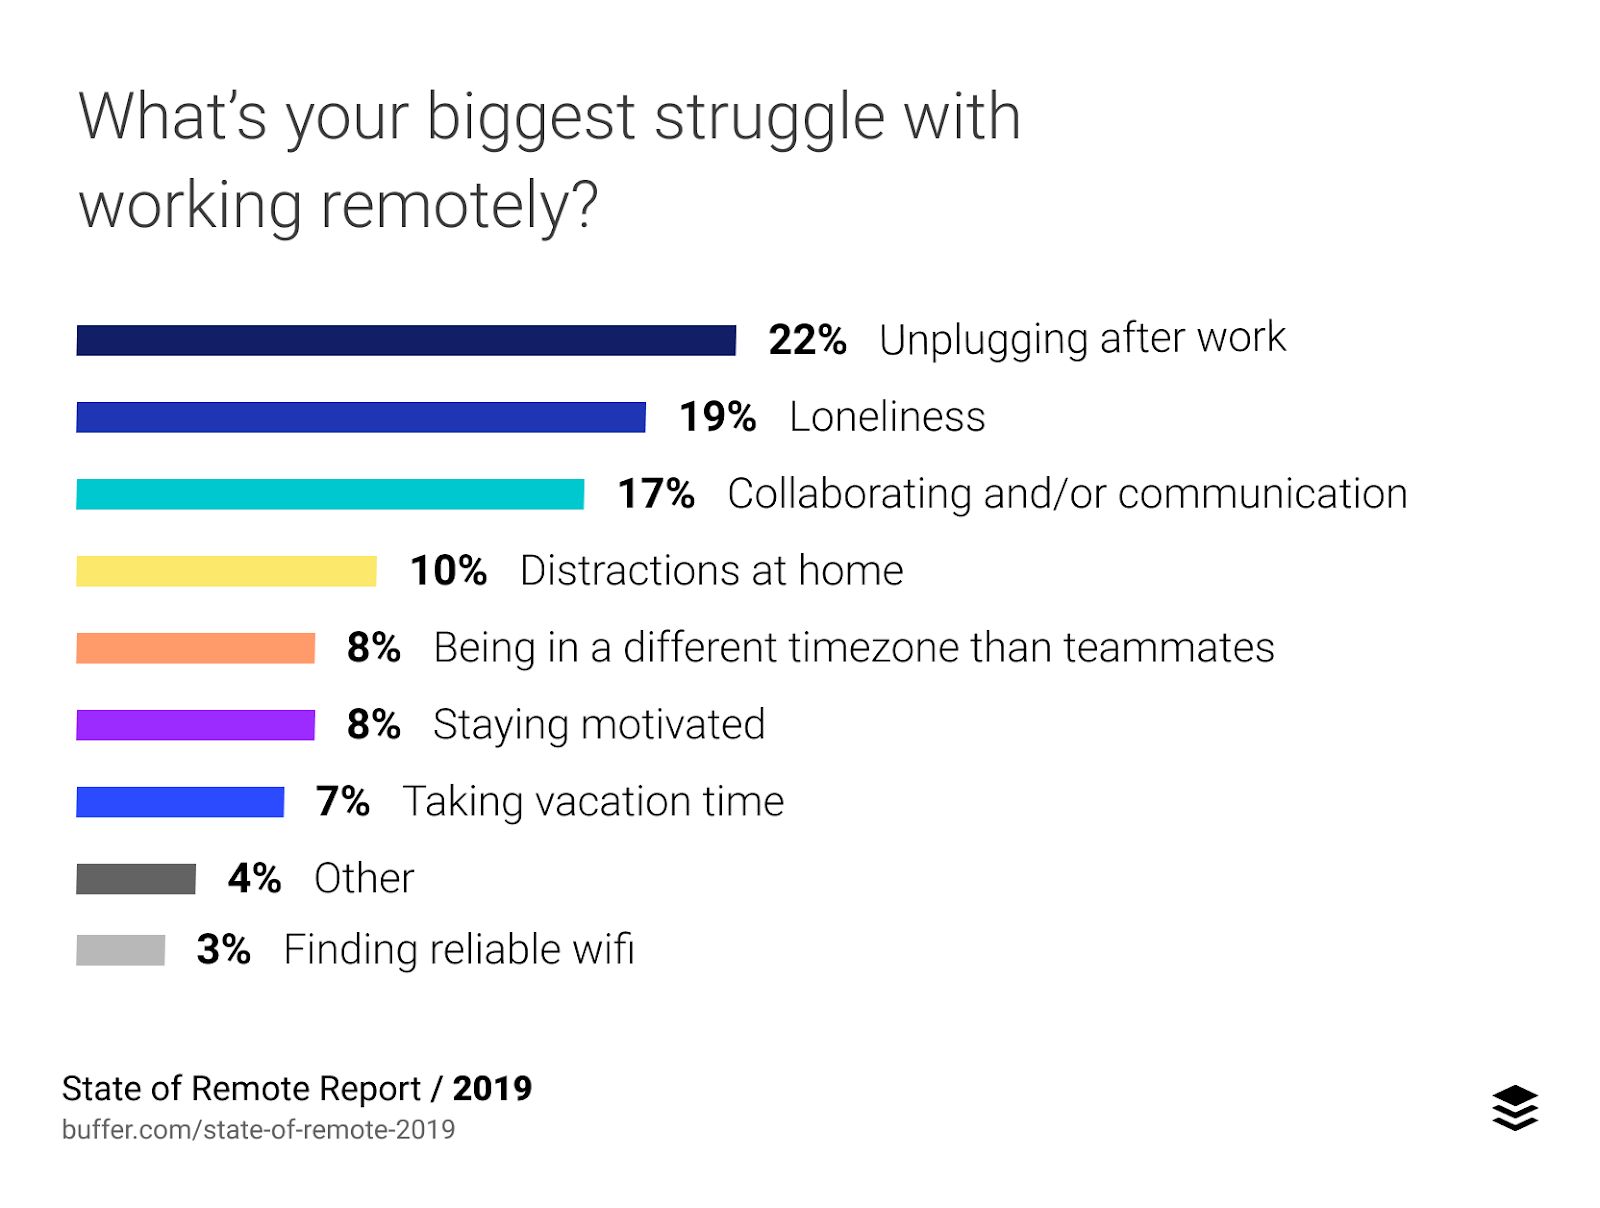 The biggest struggles of working remotely, according to Buffer's State of Remote Work report.